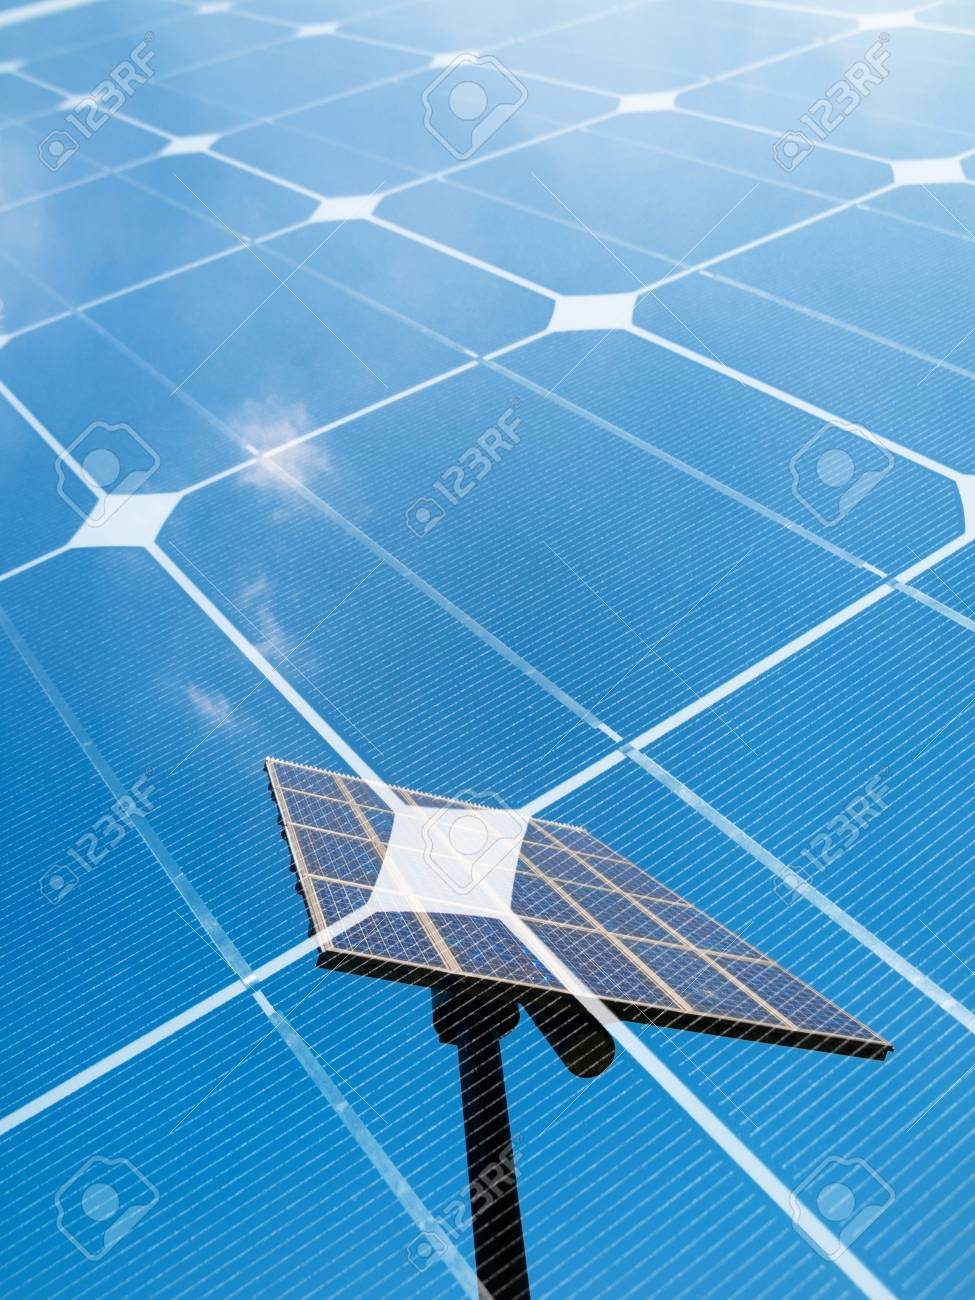 Photovoltaic panel  montage Stock Photo - 7754552